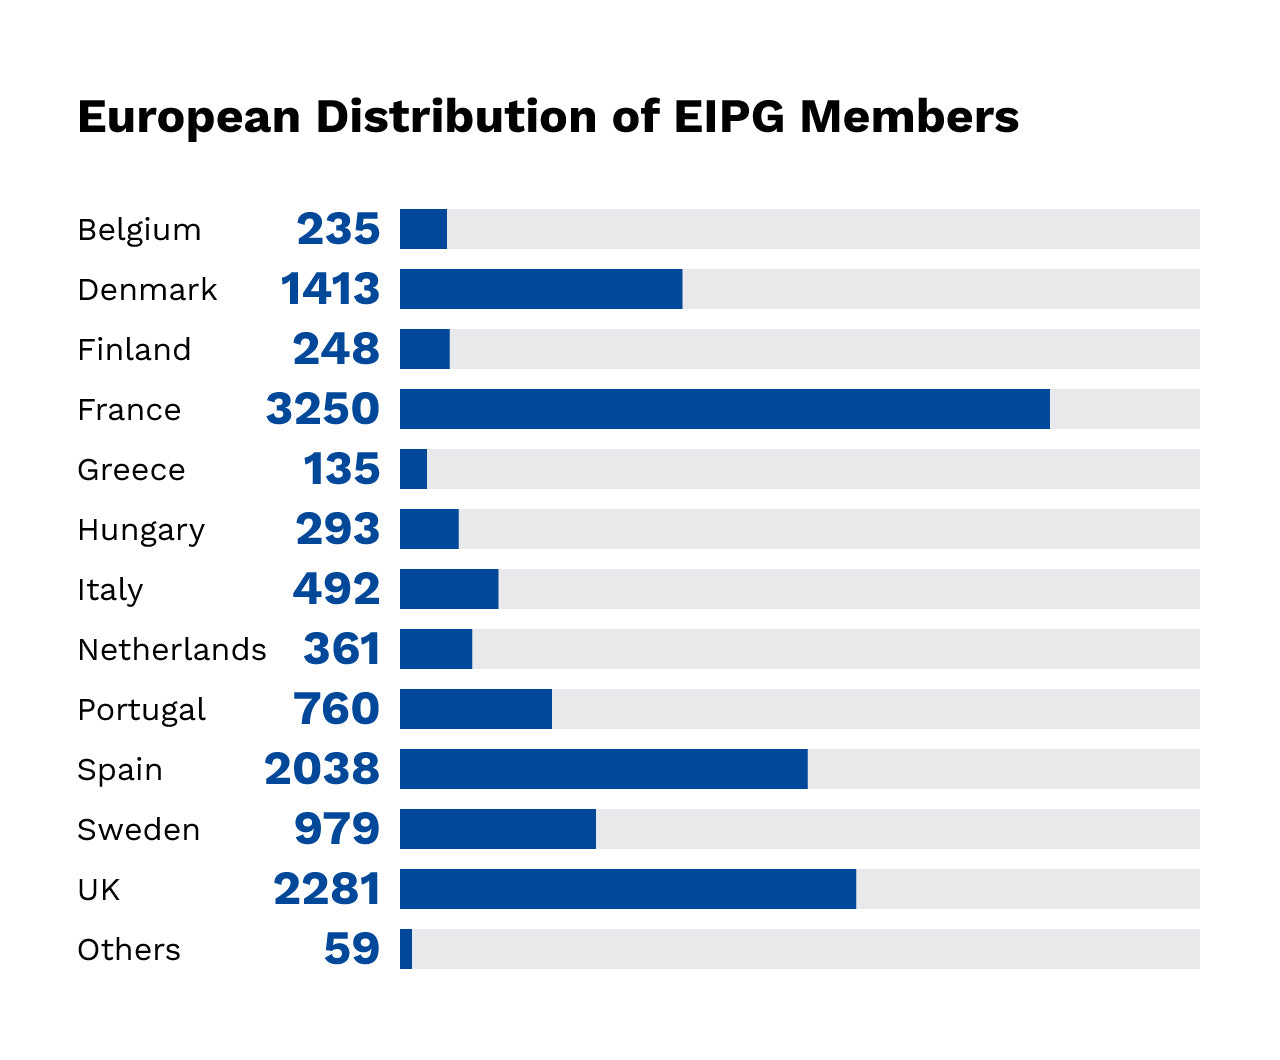 Infographic - Chart showing European Distribution of EIPG Members